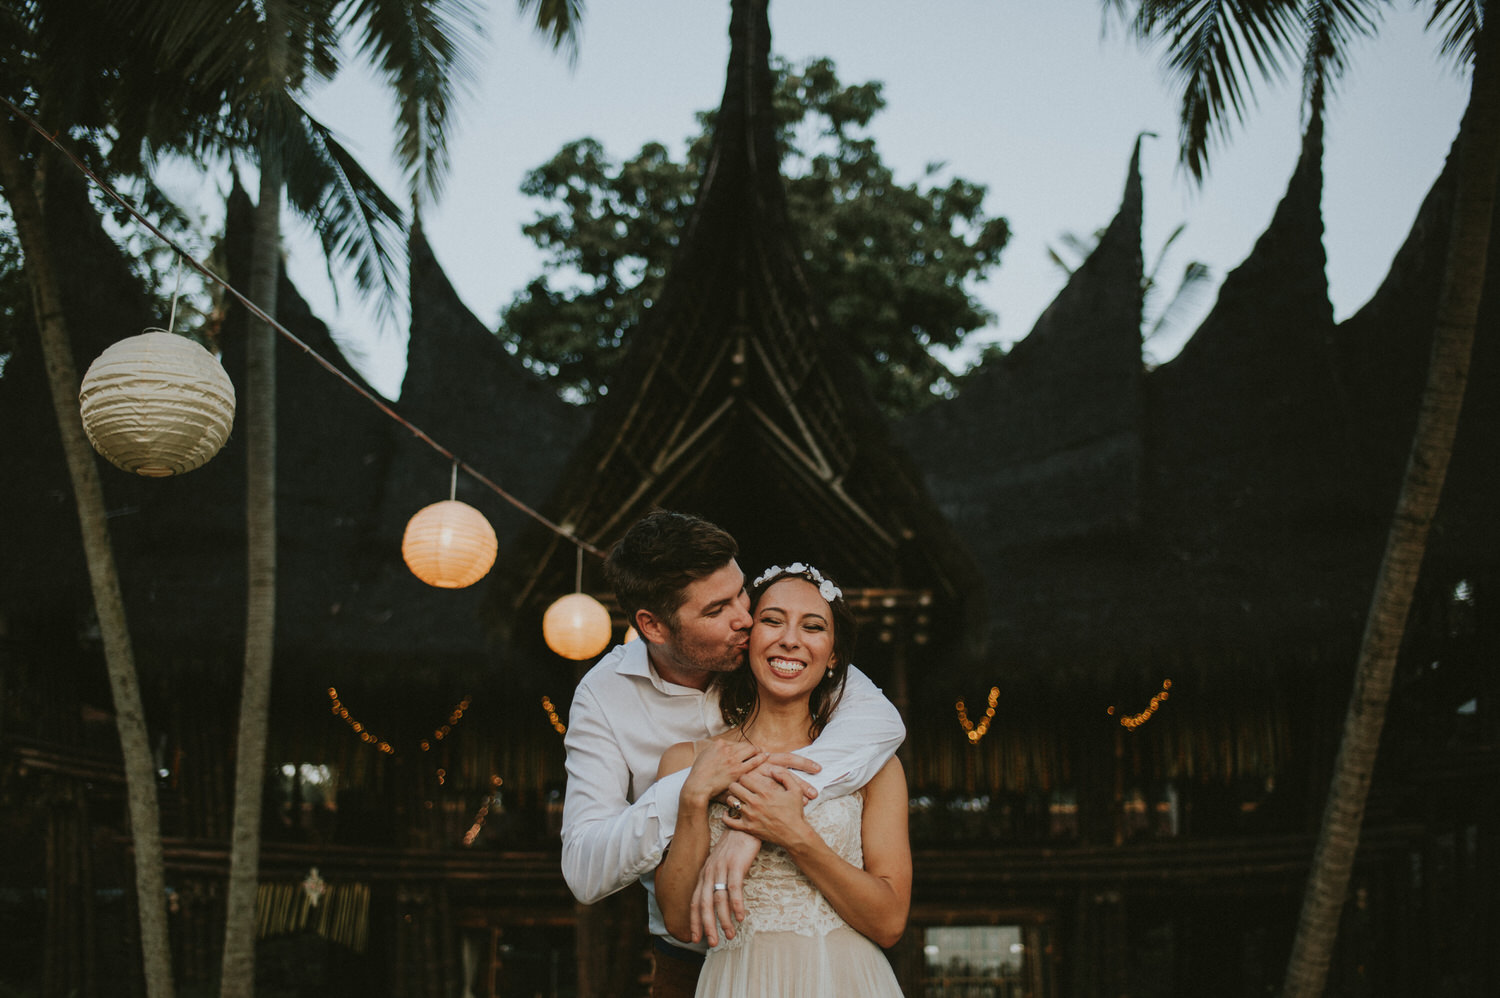 bali-wedding-ubud-wedding-wedding-destination-diktatphotography-kadek-artayasa-elaine-and-glenn-108